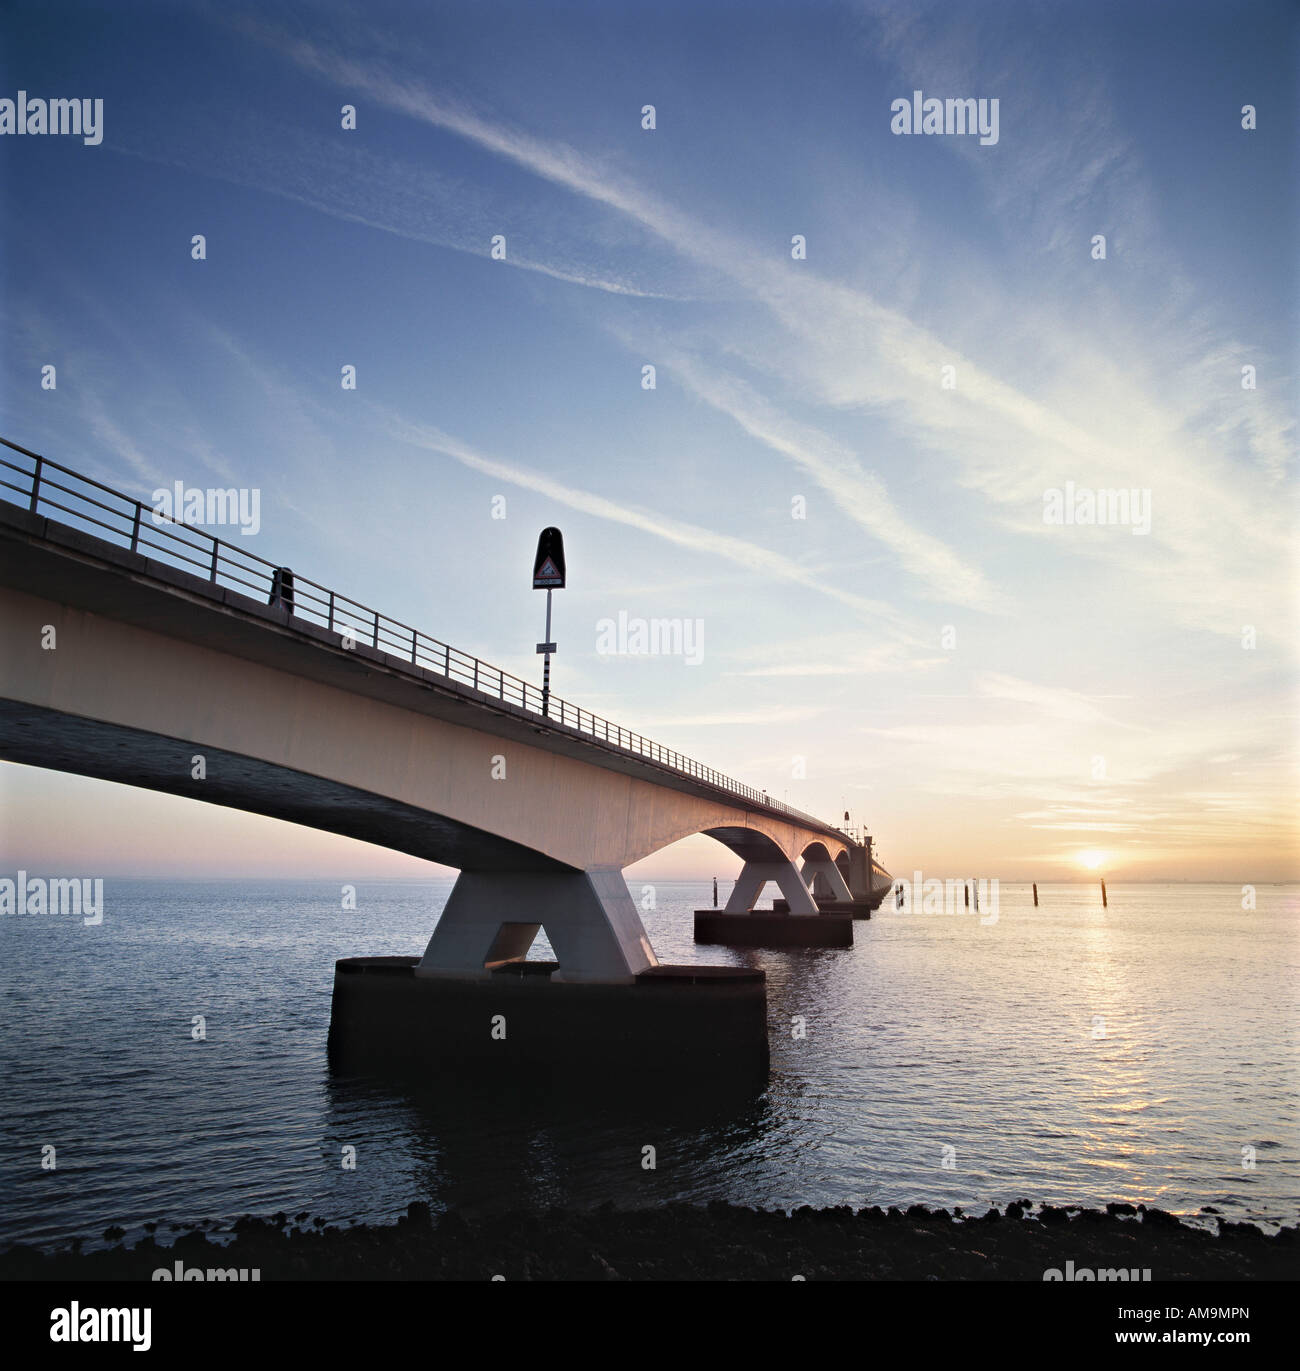 A bridge over water in the Netherlands. - Stock Image